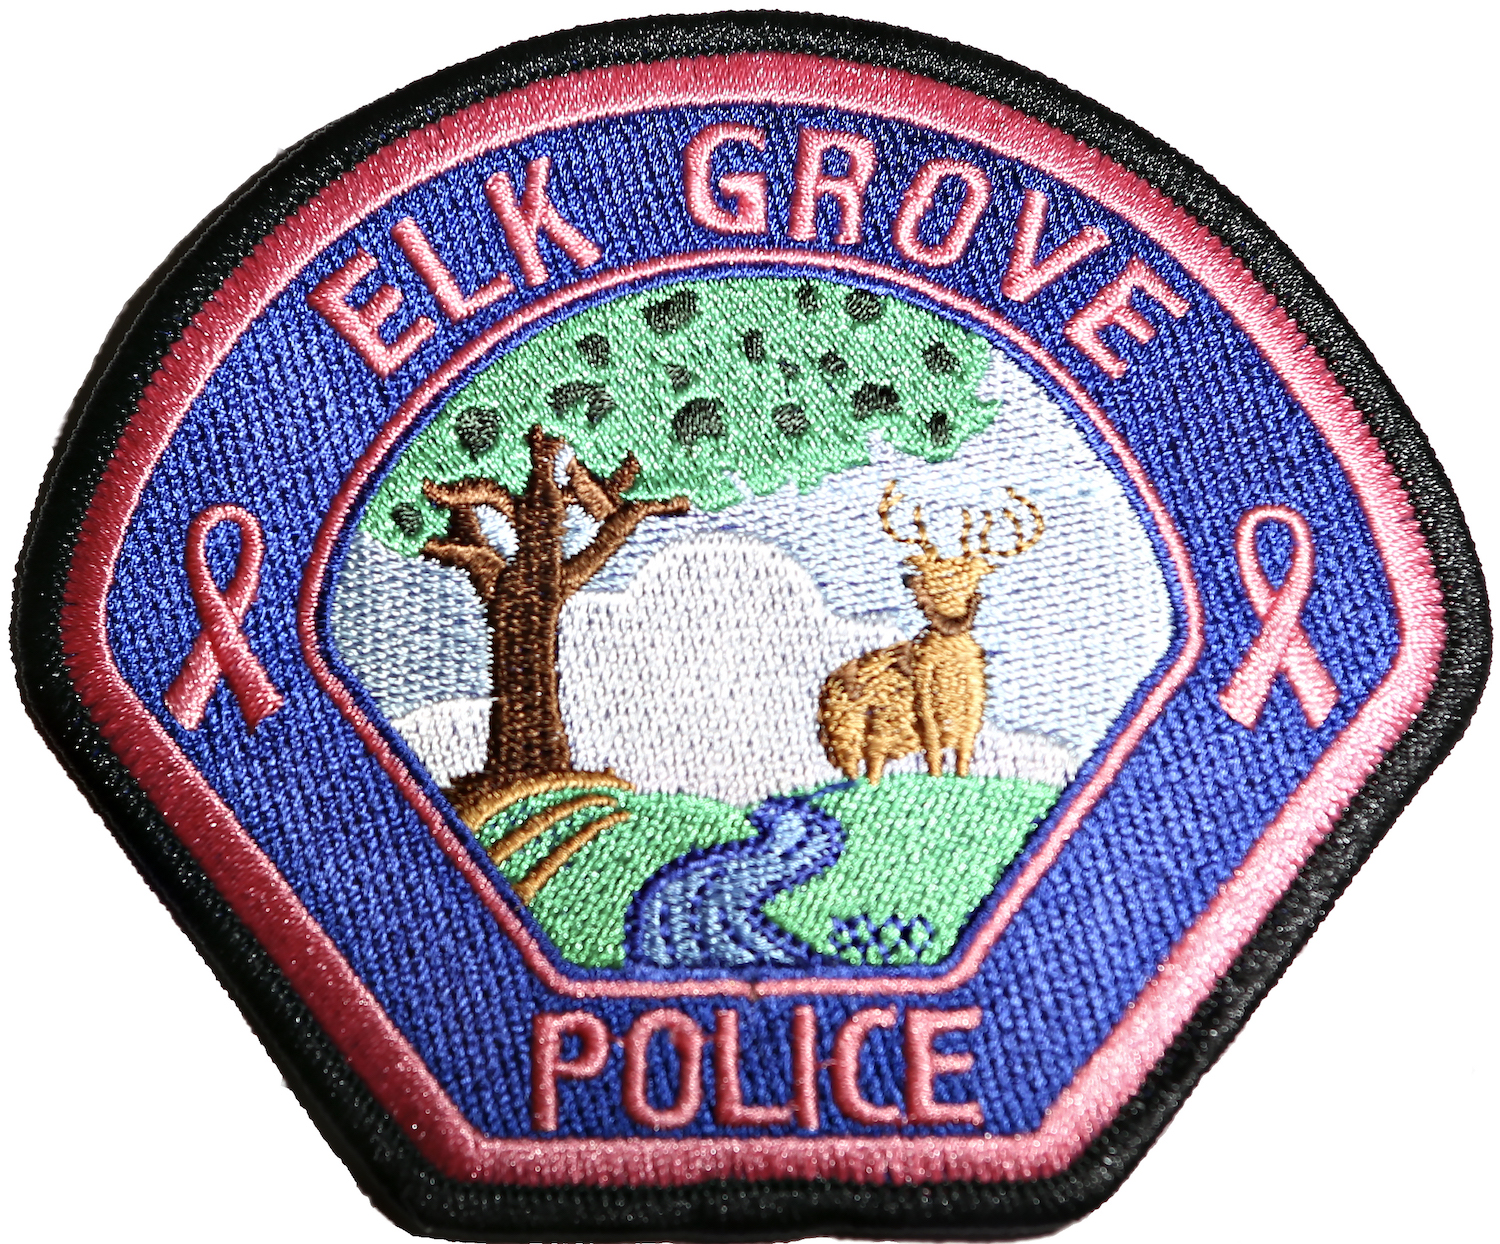 EGPD Pink Patch Project.jpg